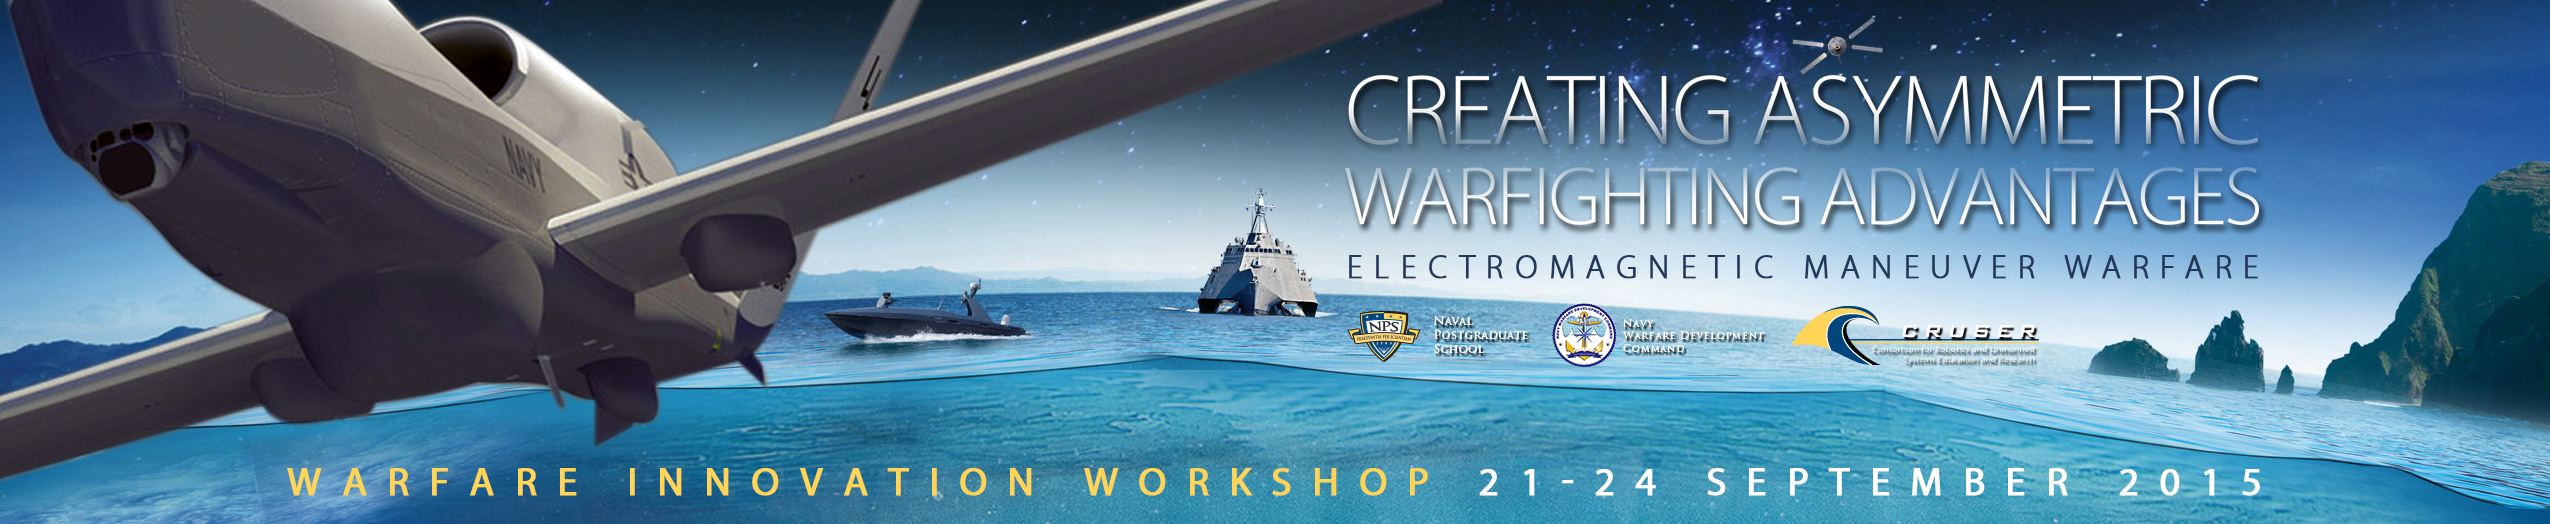 Workshop banner 2015